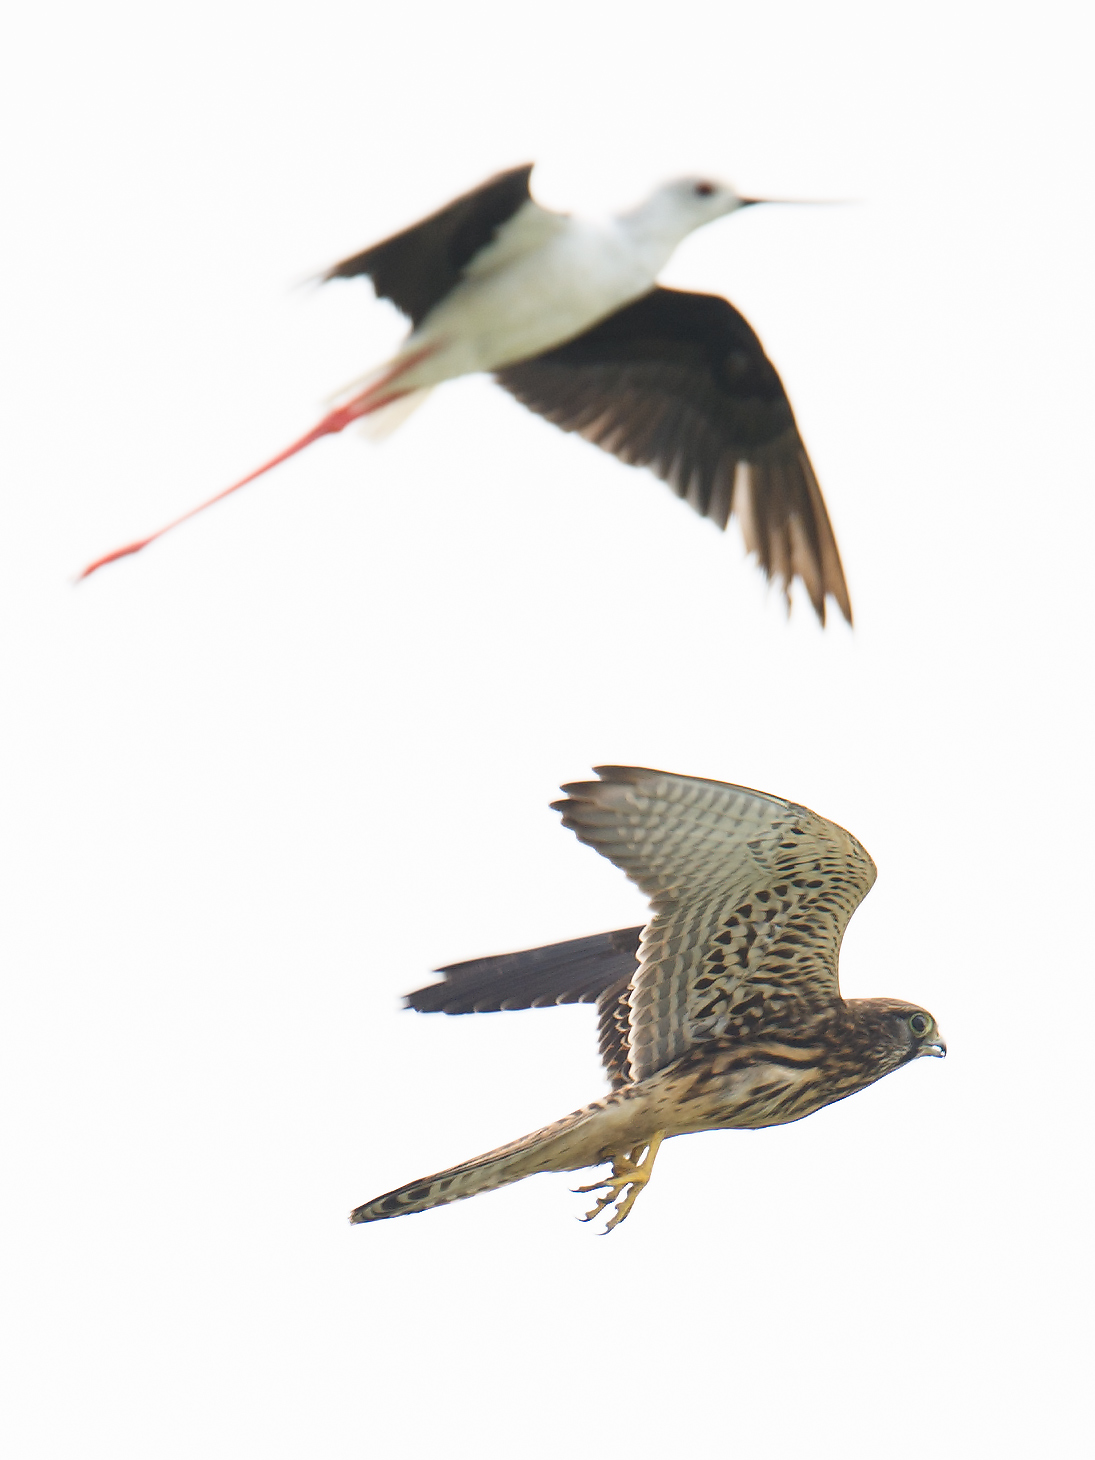 Common Kestrel Falco tinnunculus being mobbed by Black-winged Stilt Himantopus himantopus. © Craig Brelsford (craigbrelsford.com, shanghaibirding.com). 5 Aug. 2017. Cape Nanhui, Pudong, Shanghai, China.